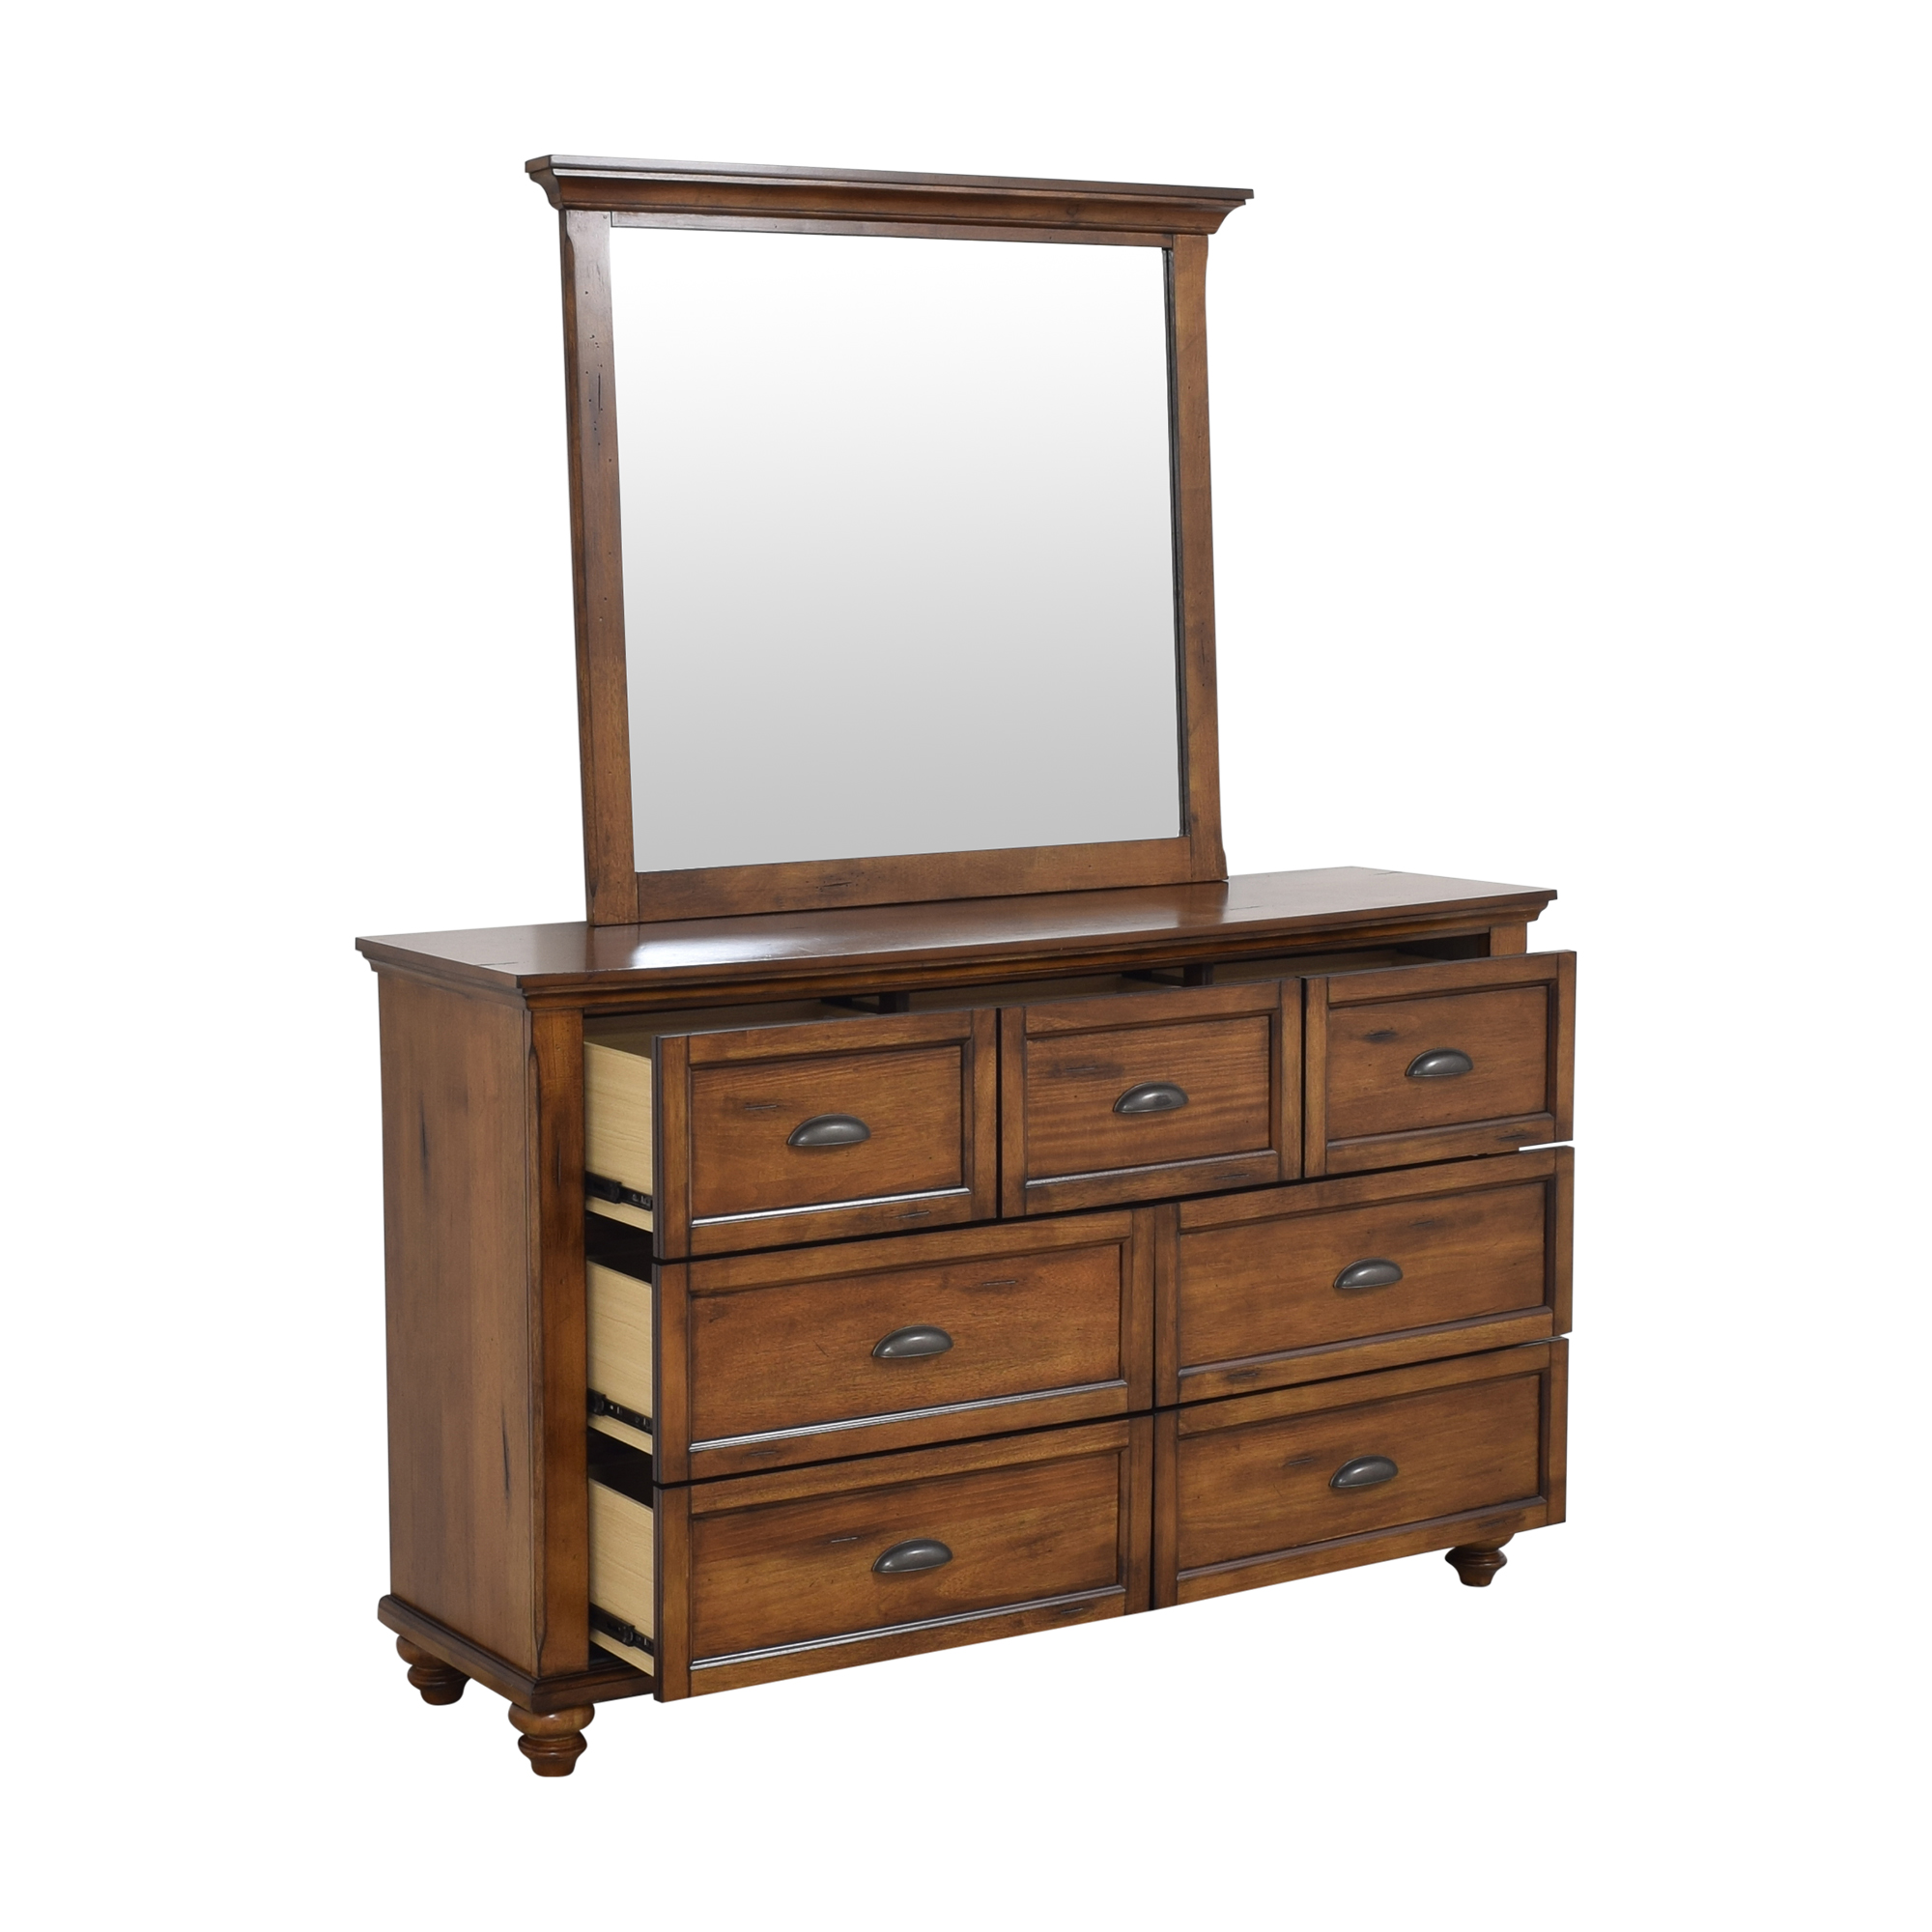 Simmons Simmons Remington Dresser with Mirror Dressers